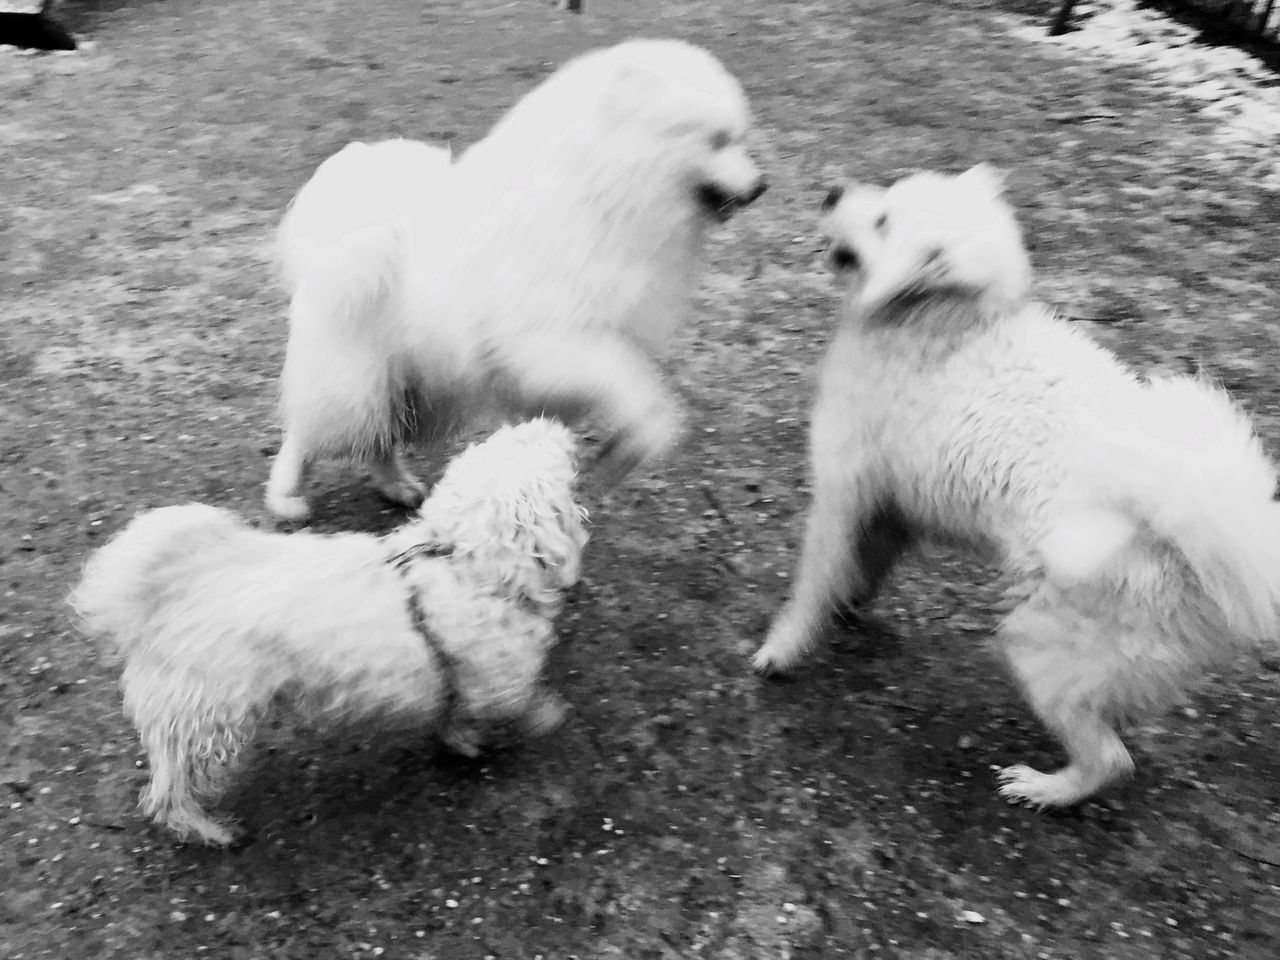 dog, animal themes, domestic animals, two animals, pets, mammal, day, young animal, togetherness, no people, playing, outdoors, nature, close-up